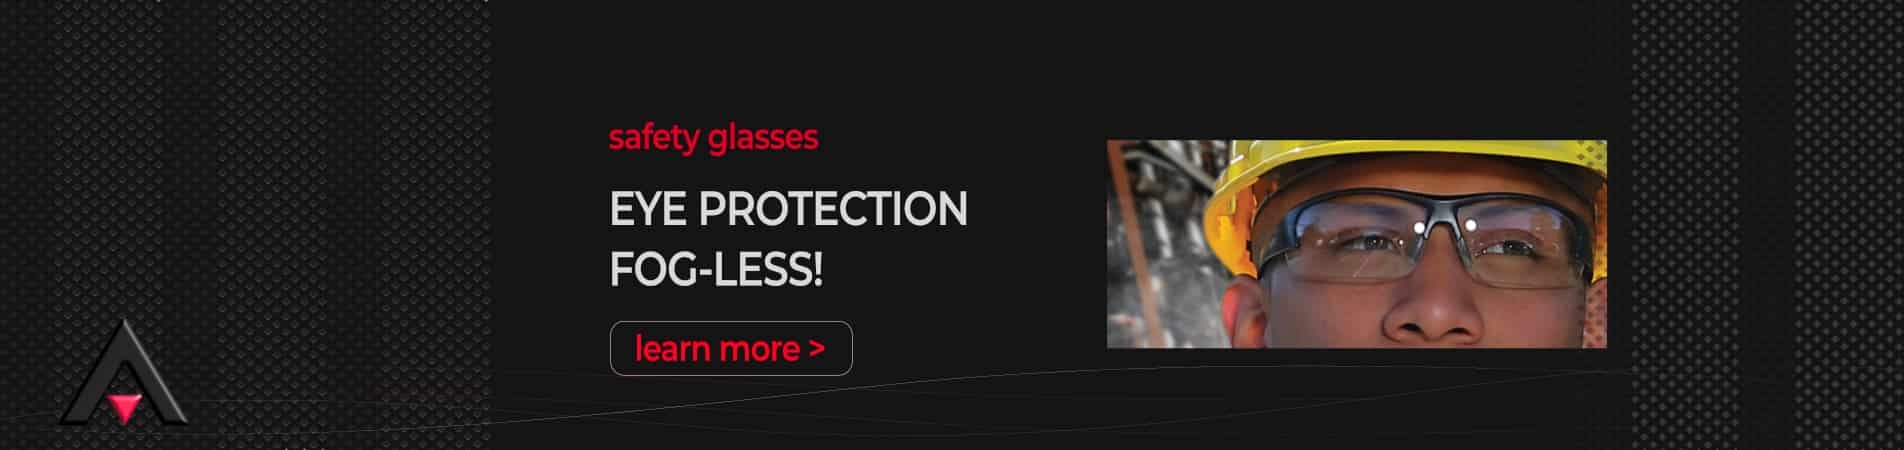 Eye Protection - Bouton Optical Fogless Safety Glasses